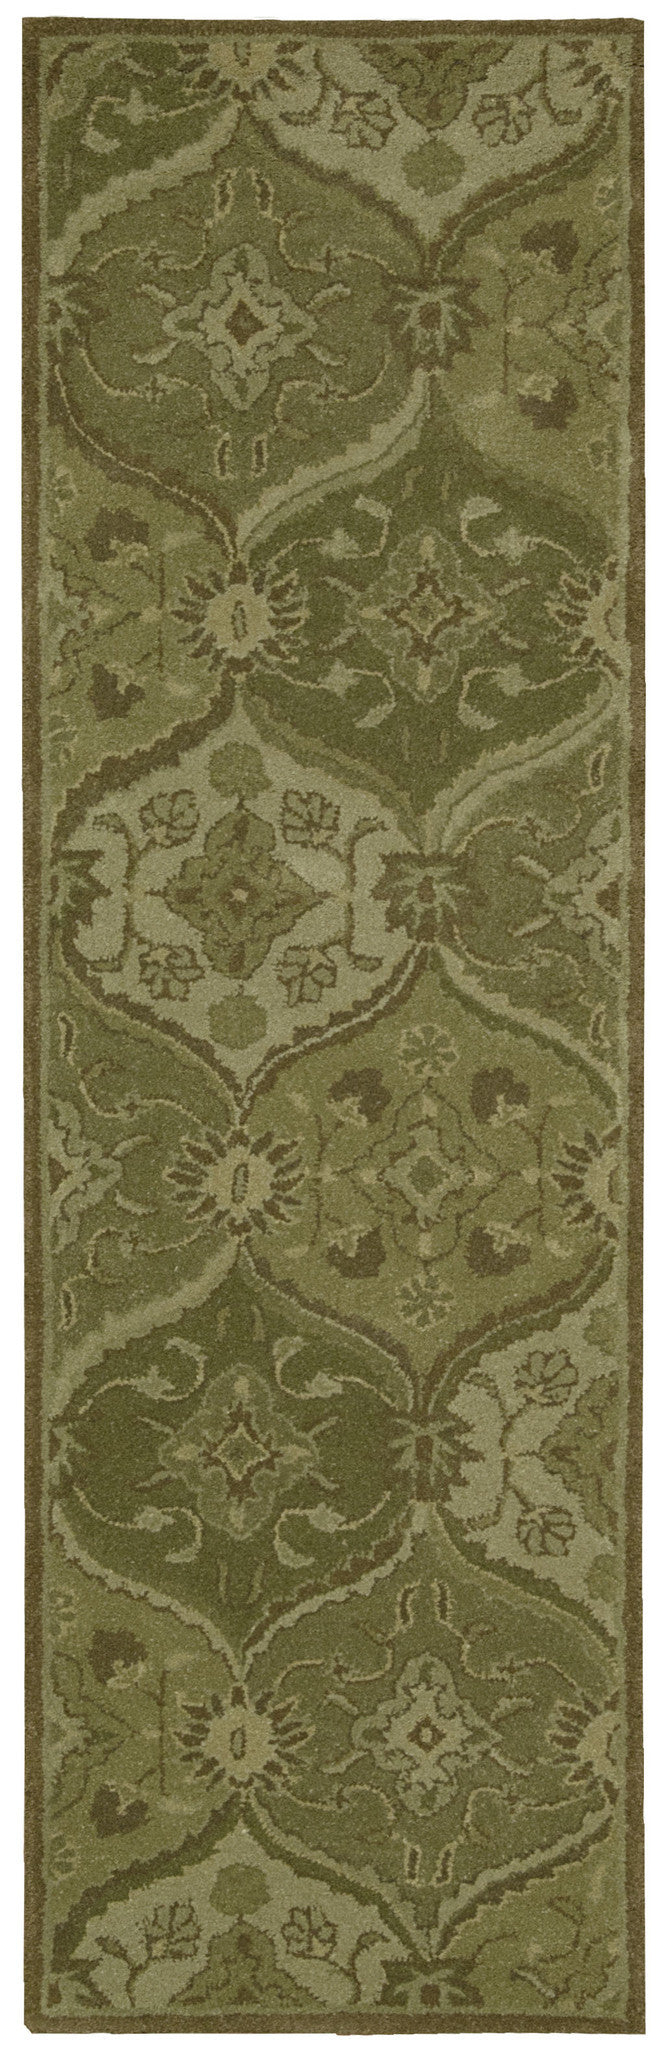 Nourison India House Green Area Rug IH88 GRE